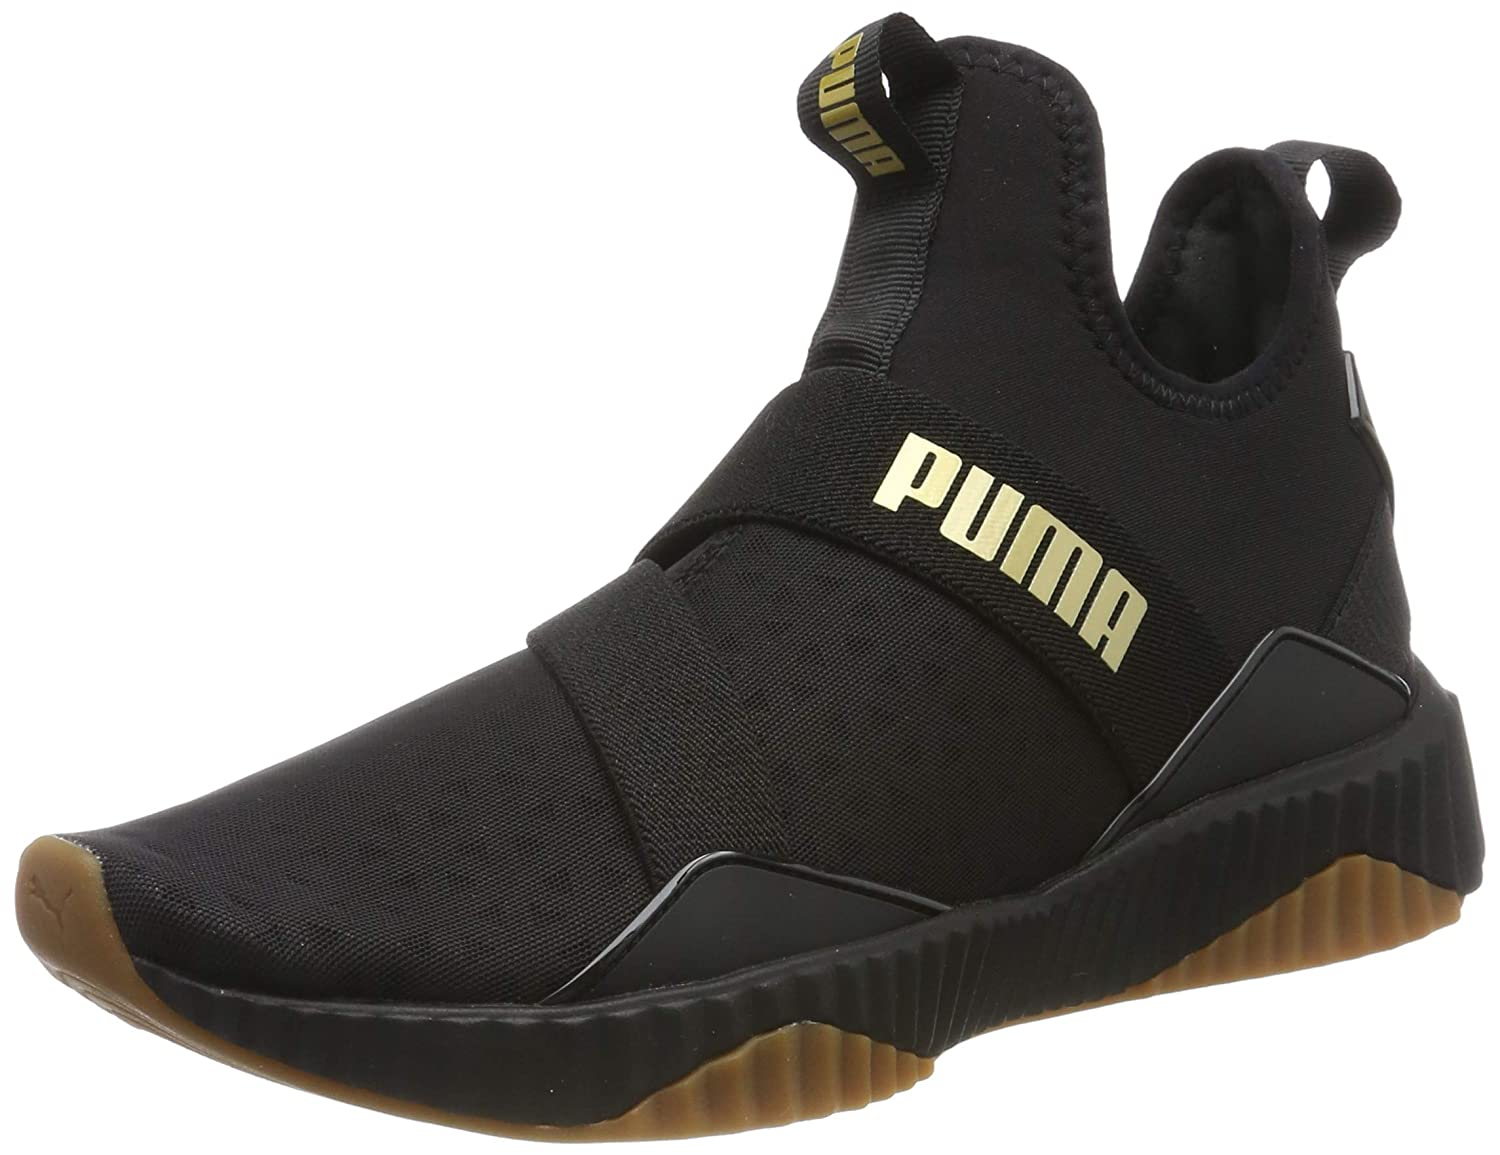 defy mid sparkle women's trainers